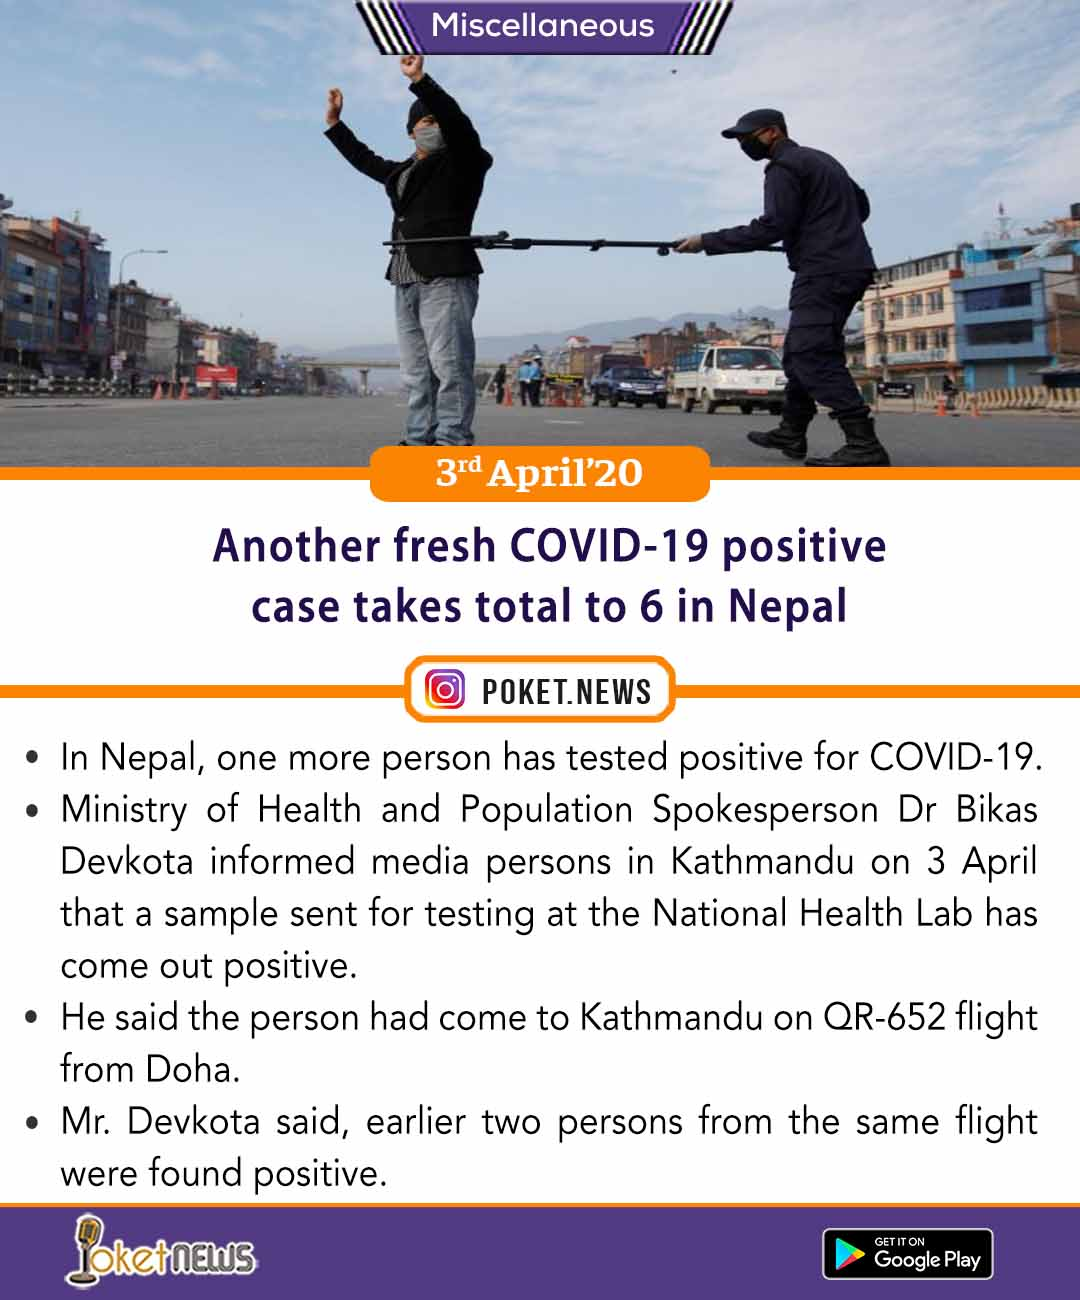 Another fresh COVID-19 positive case takes total to 6 in Nepal